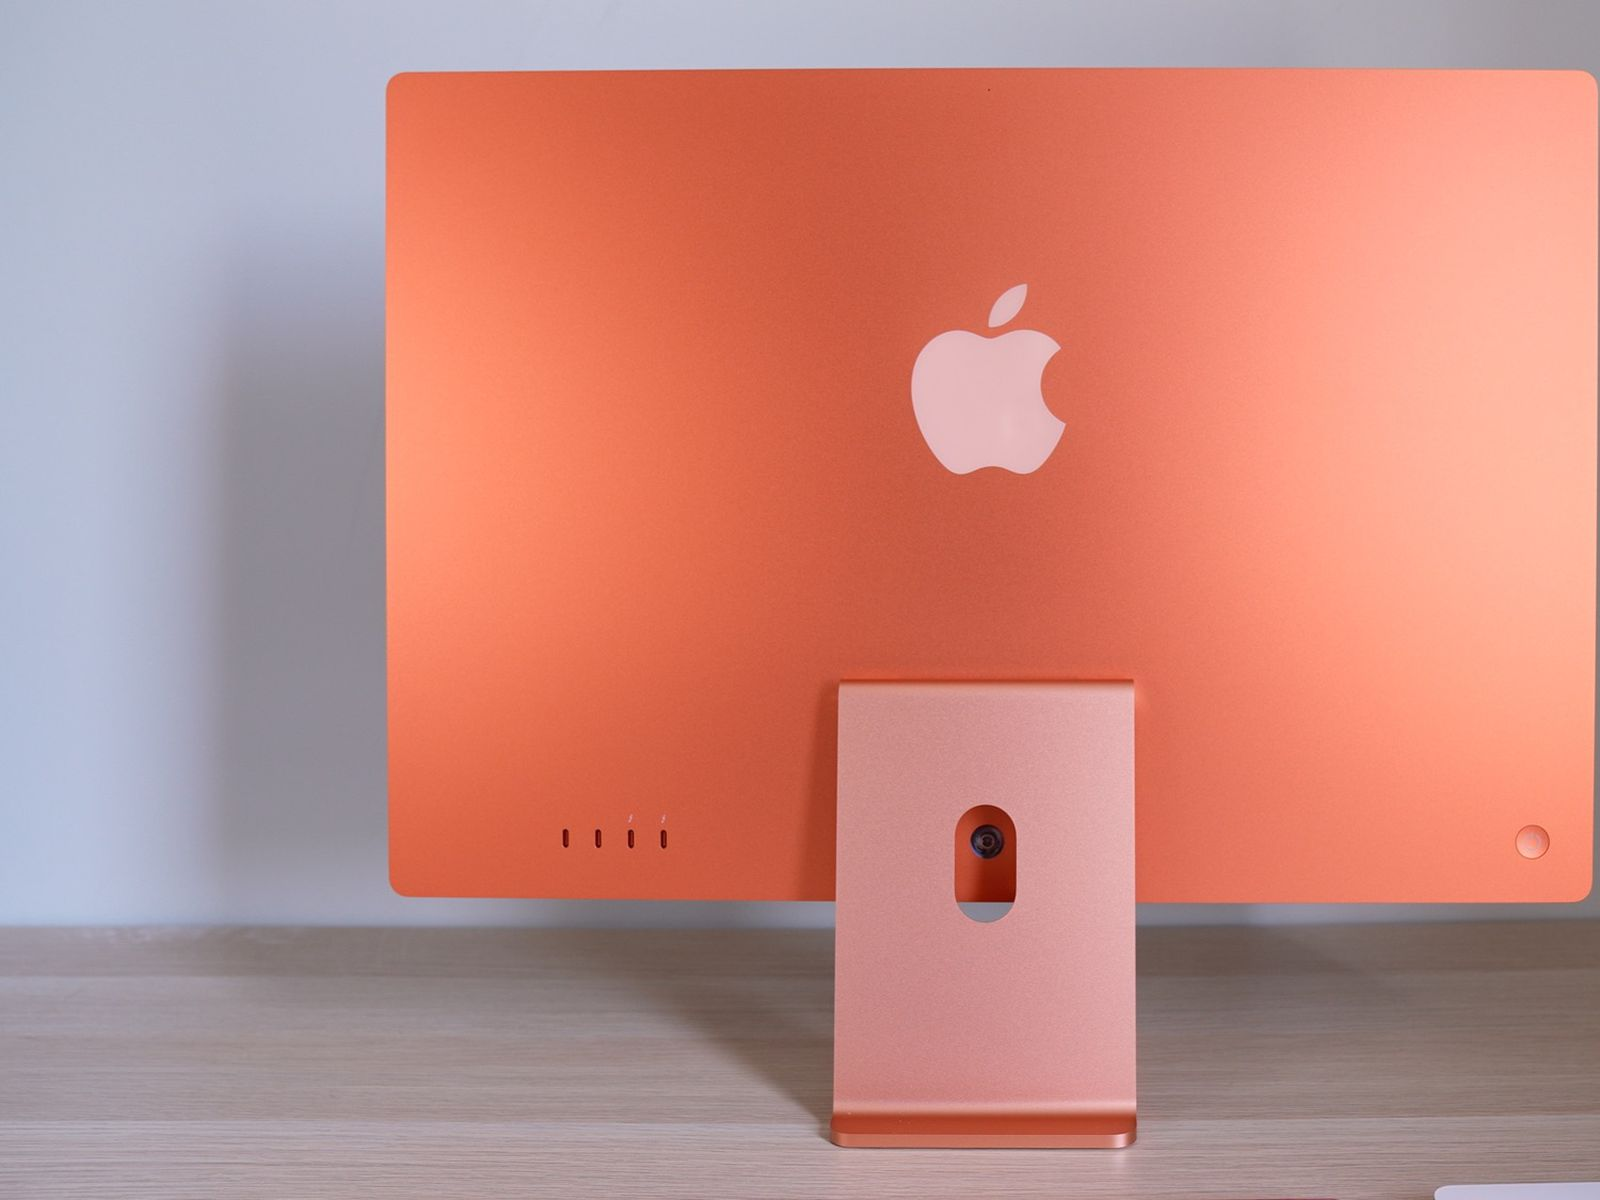 Some M1 iMac Models Shipping With Crooked Mountings - MacRumors